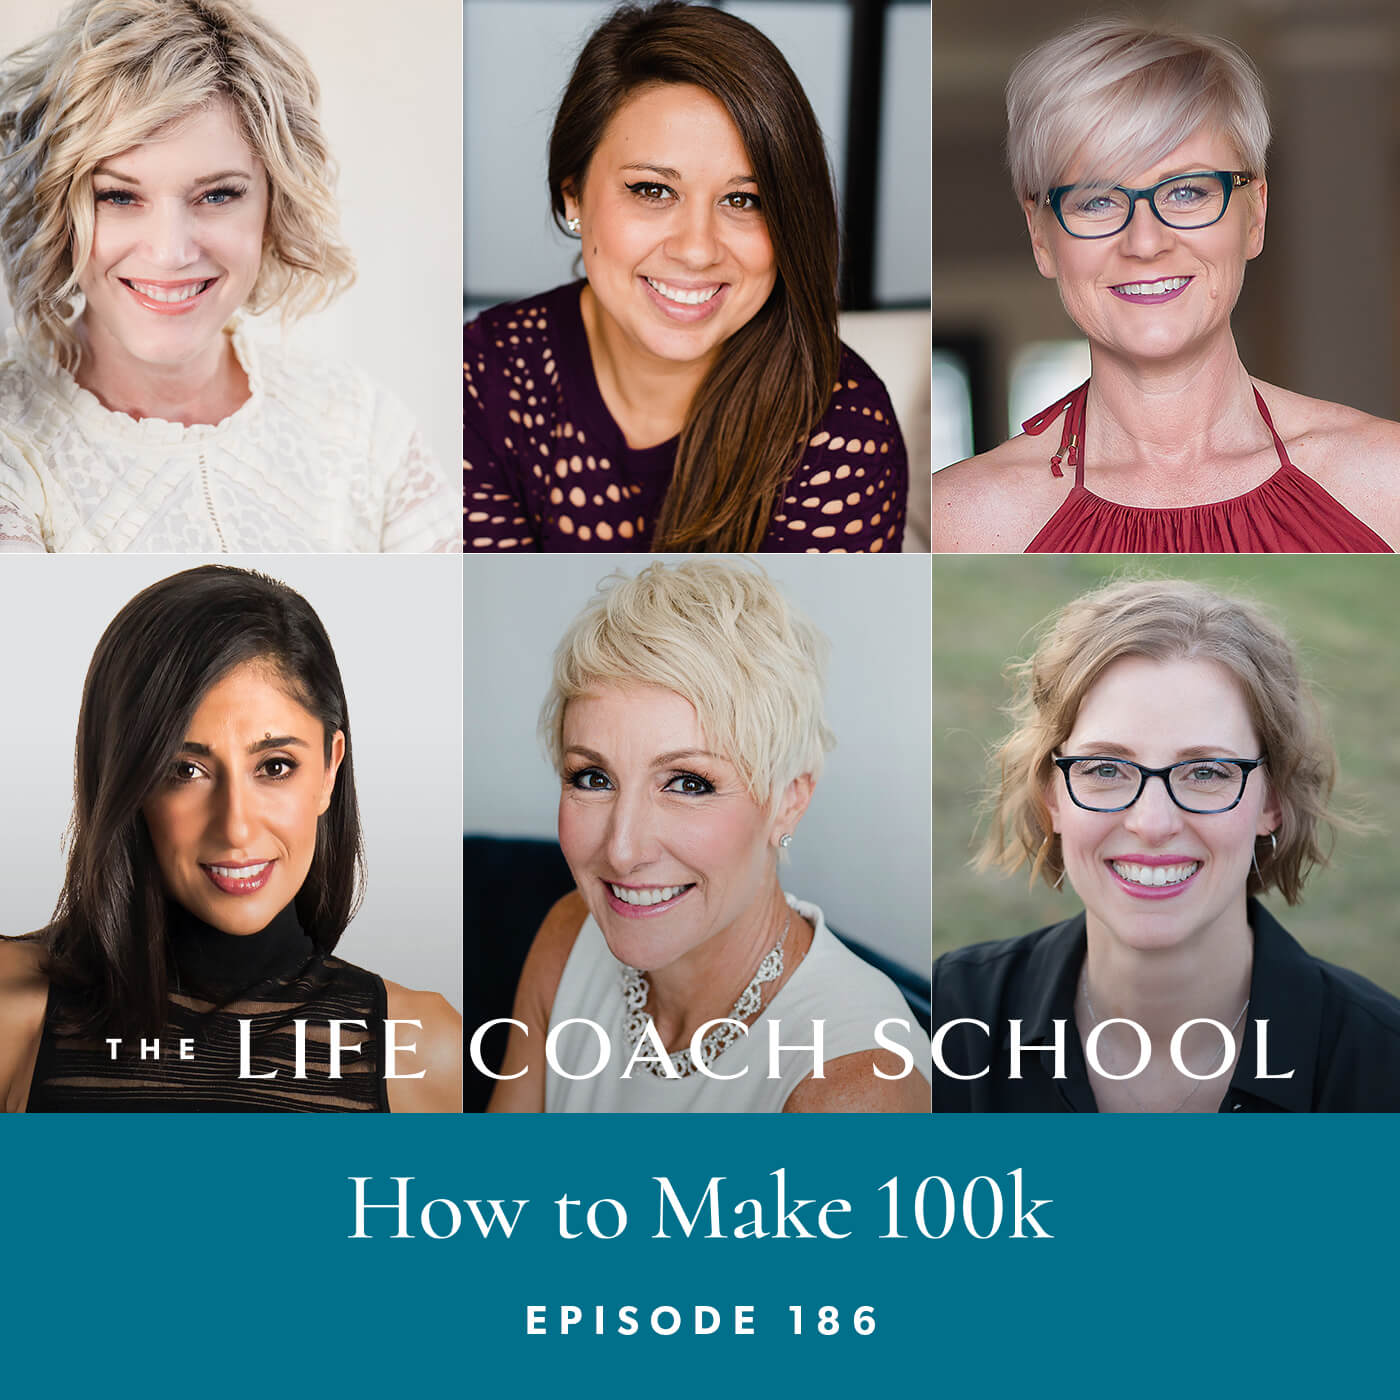 The Life Coach School Podcast with Brooke Castillo | Episode 186 | How to Make 100k – Interviews with Katrina, Corrine, Stacey, Brenda, and Jody